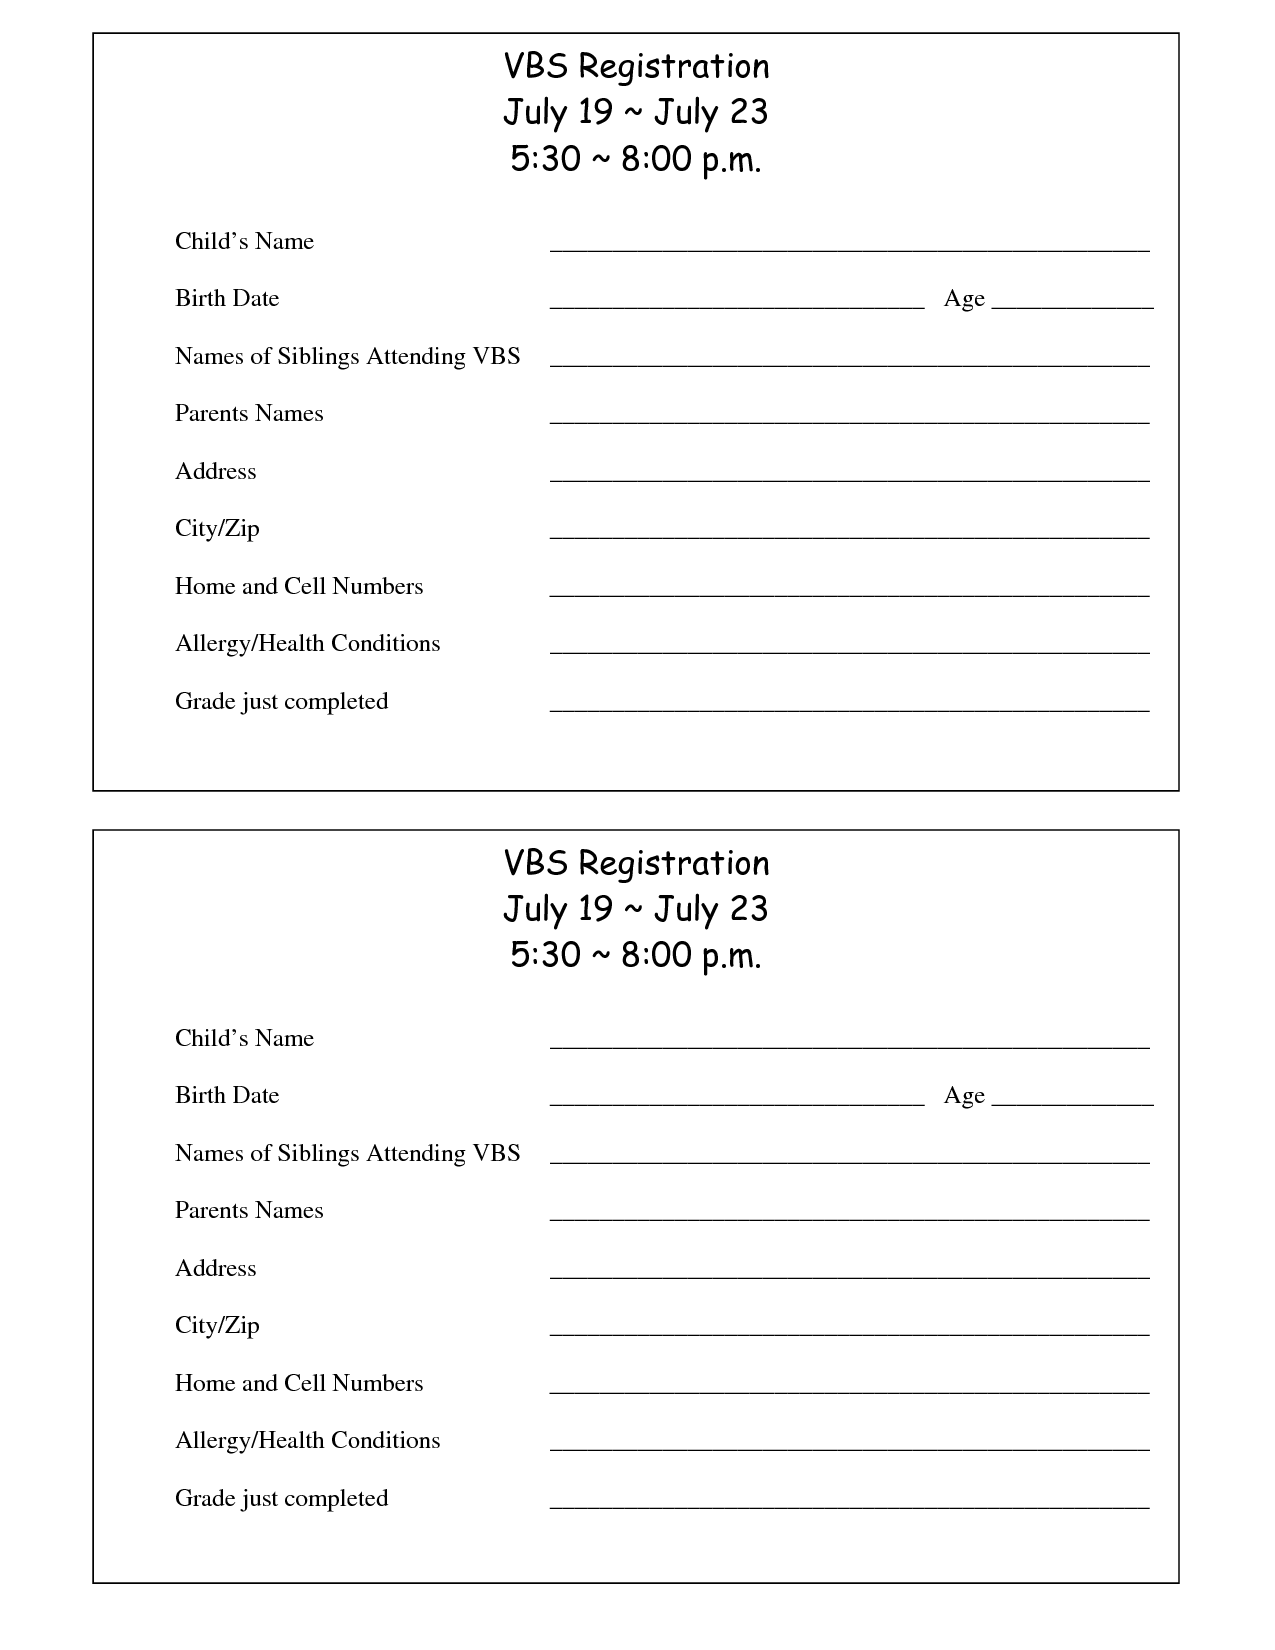 printable vbs registration form template conference pinterest registration form template. Black Bedroom Furniture Sets. Home Design Ideas